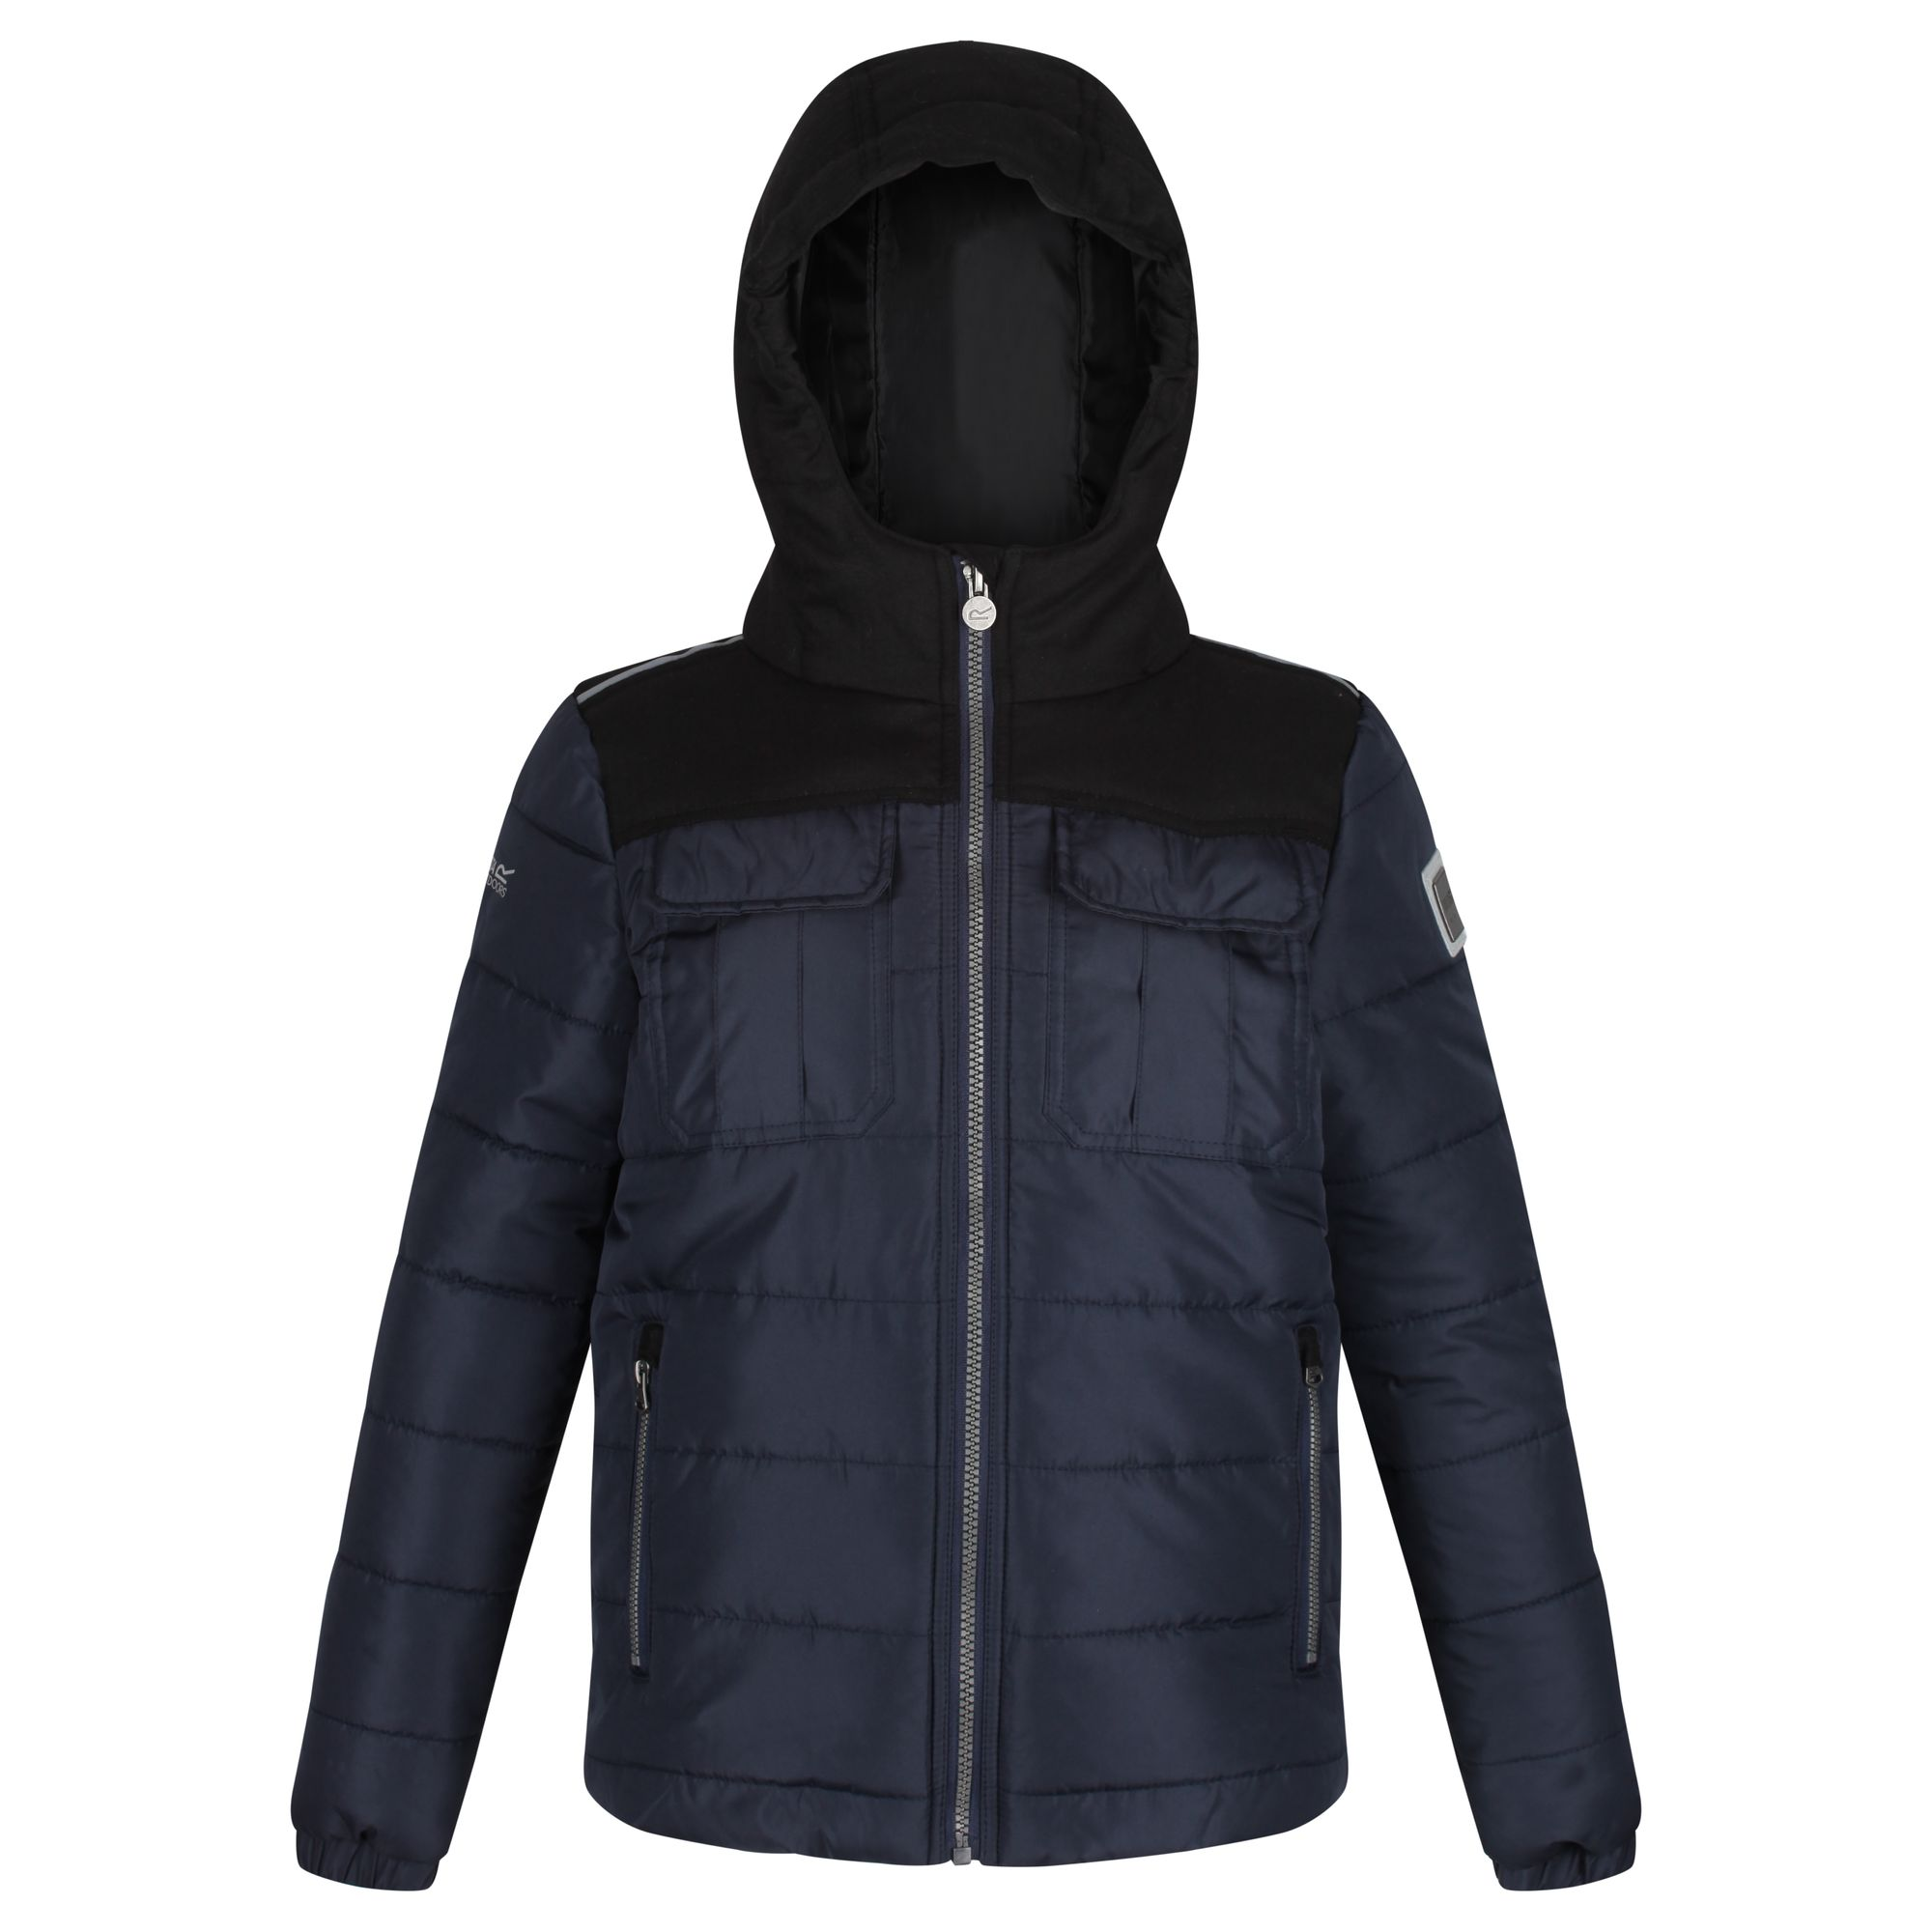 Kids' navy hooded thick jacket